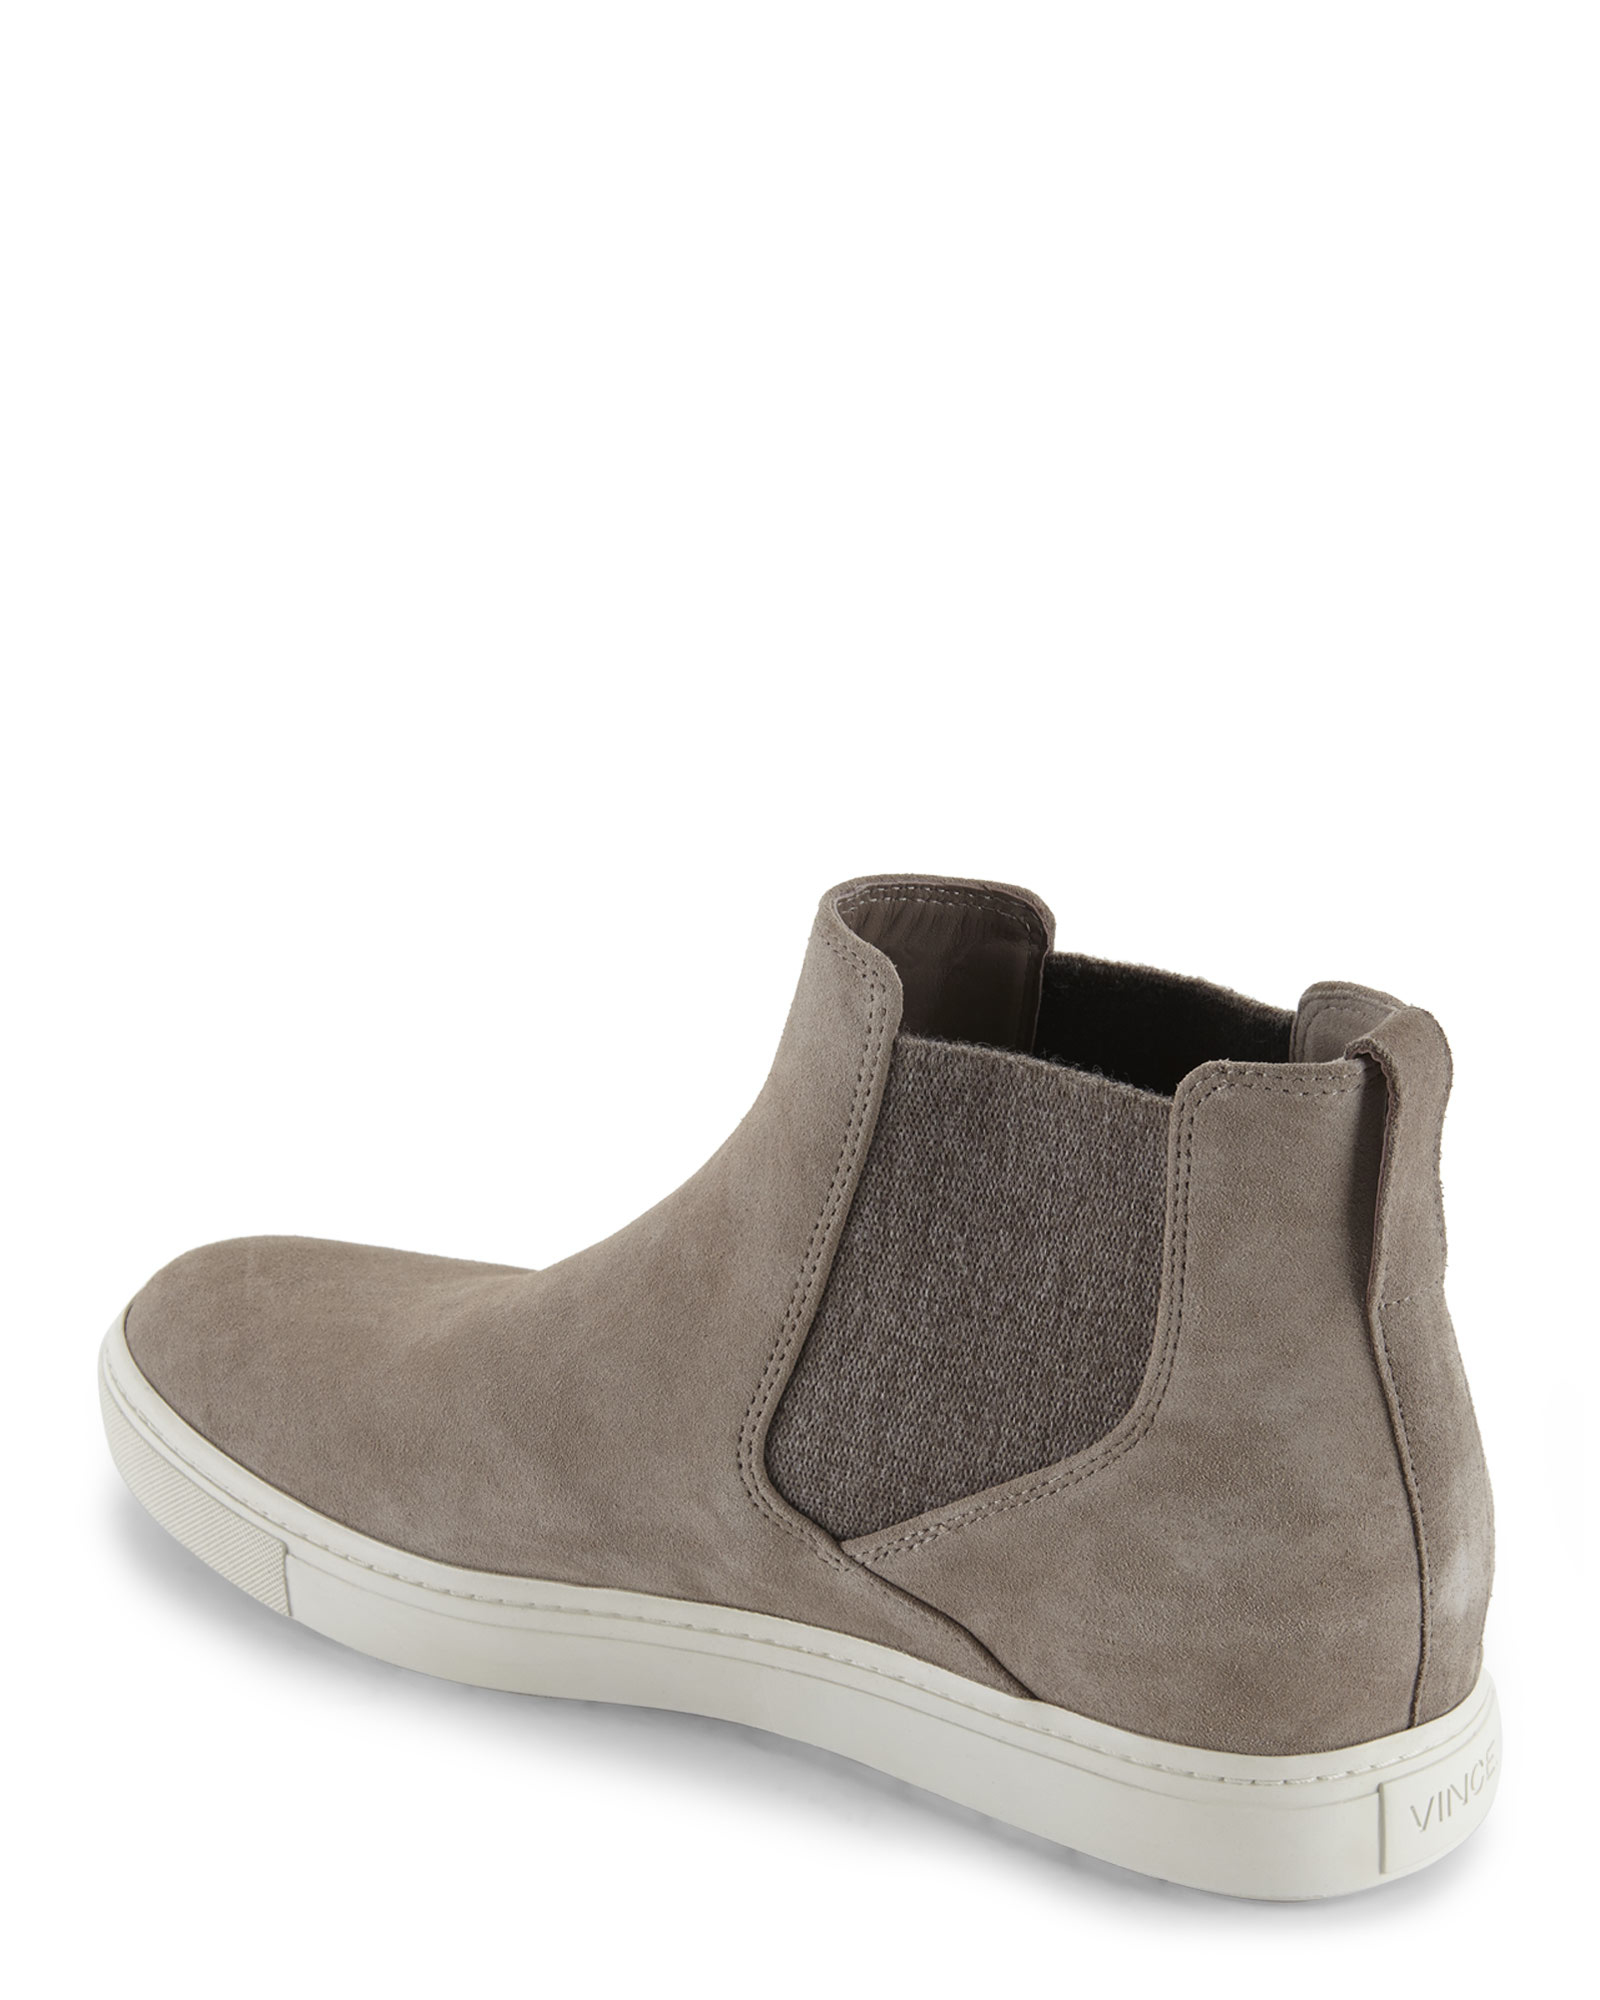 e6bdd3cf098d Vince New Stone High Top Slip-On Sneakers in Natural